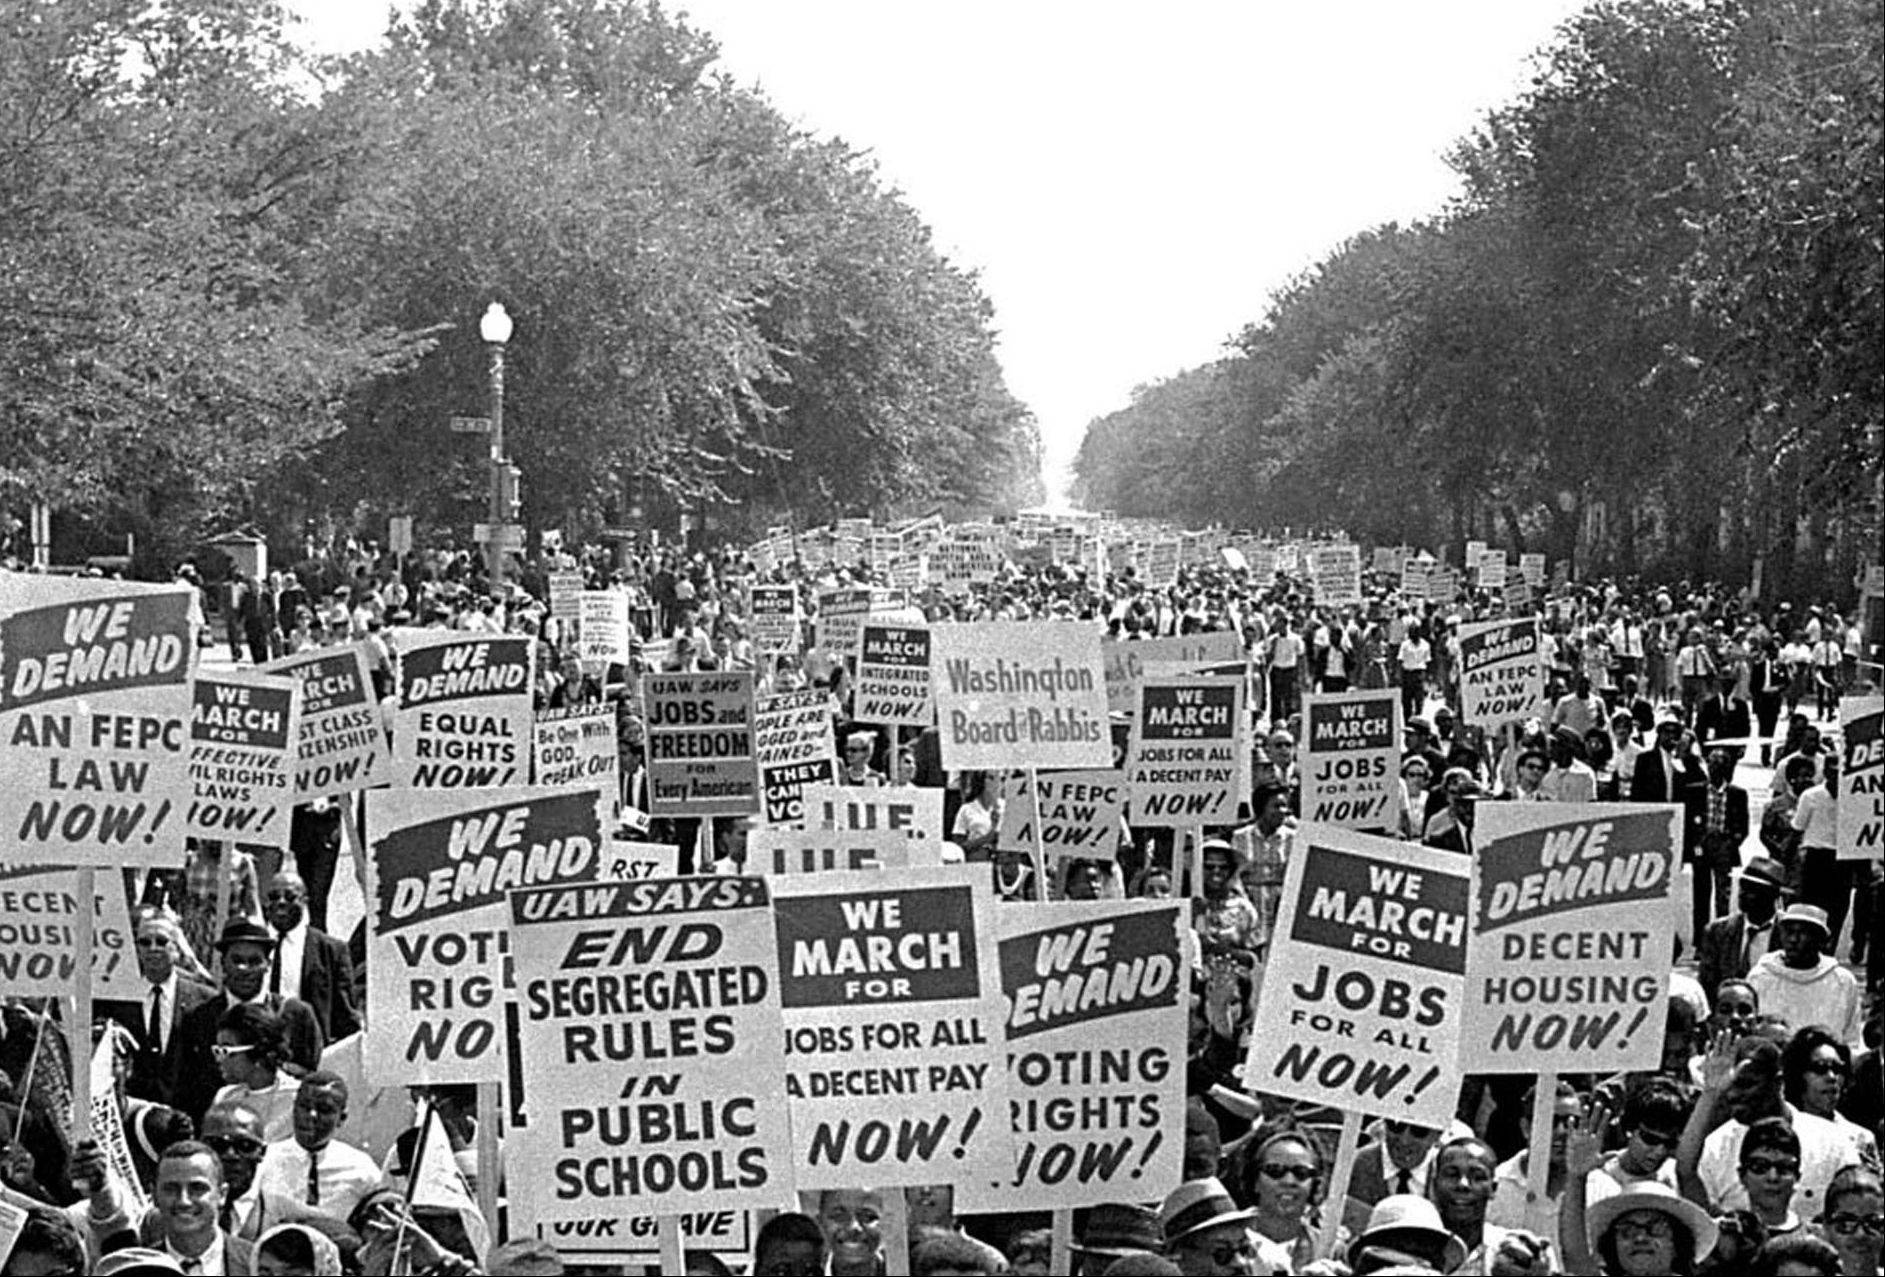 Civil rights protesters march down Constitution Avenue carrying placards during the March on Washington on Aug. 28, 1963.